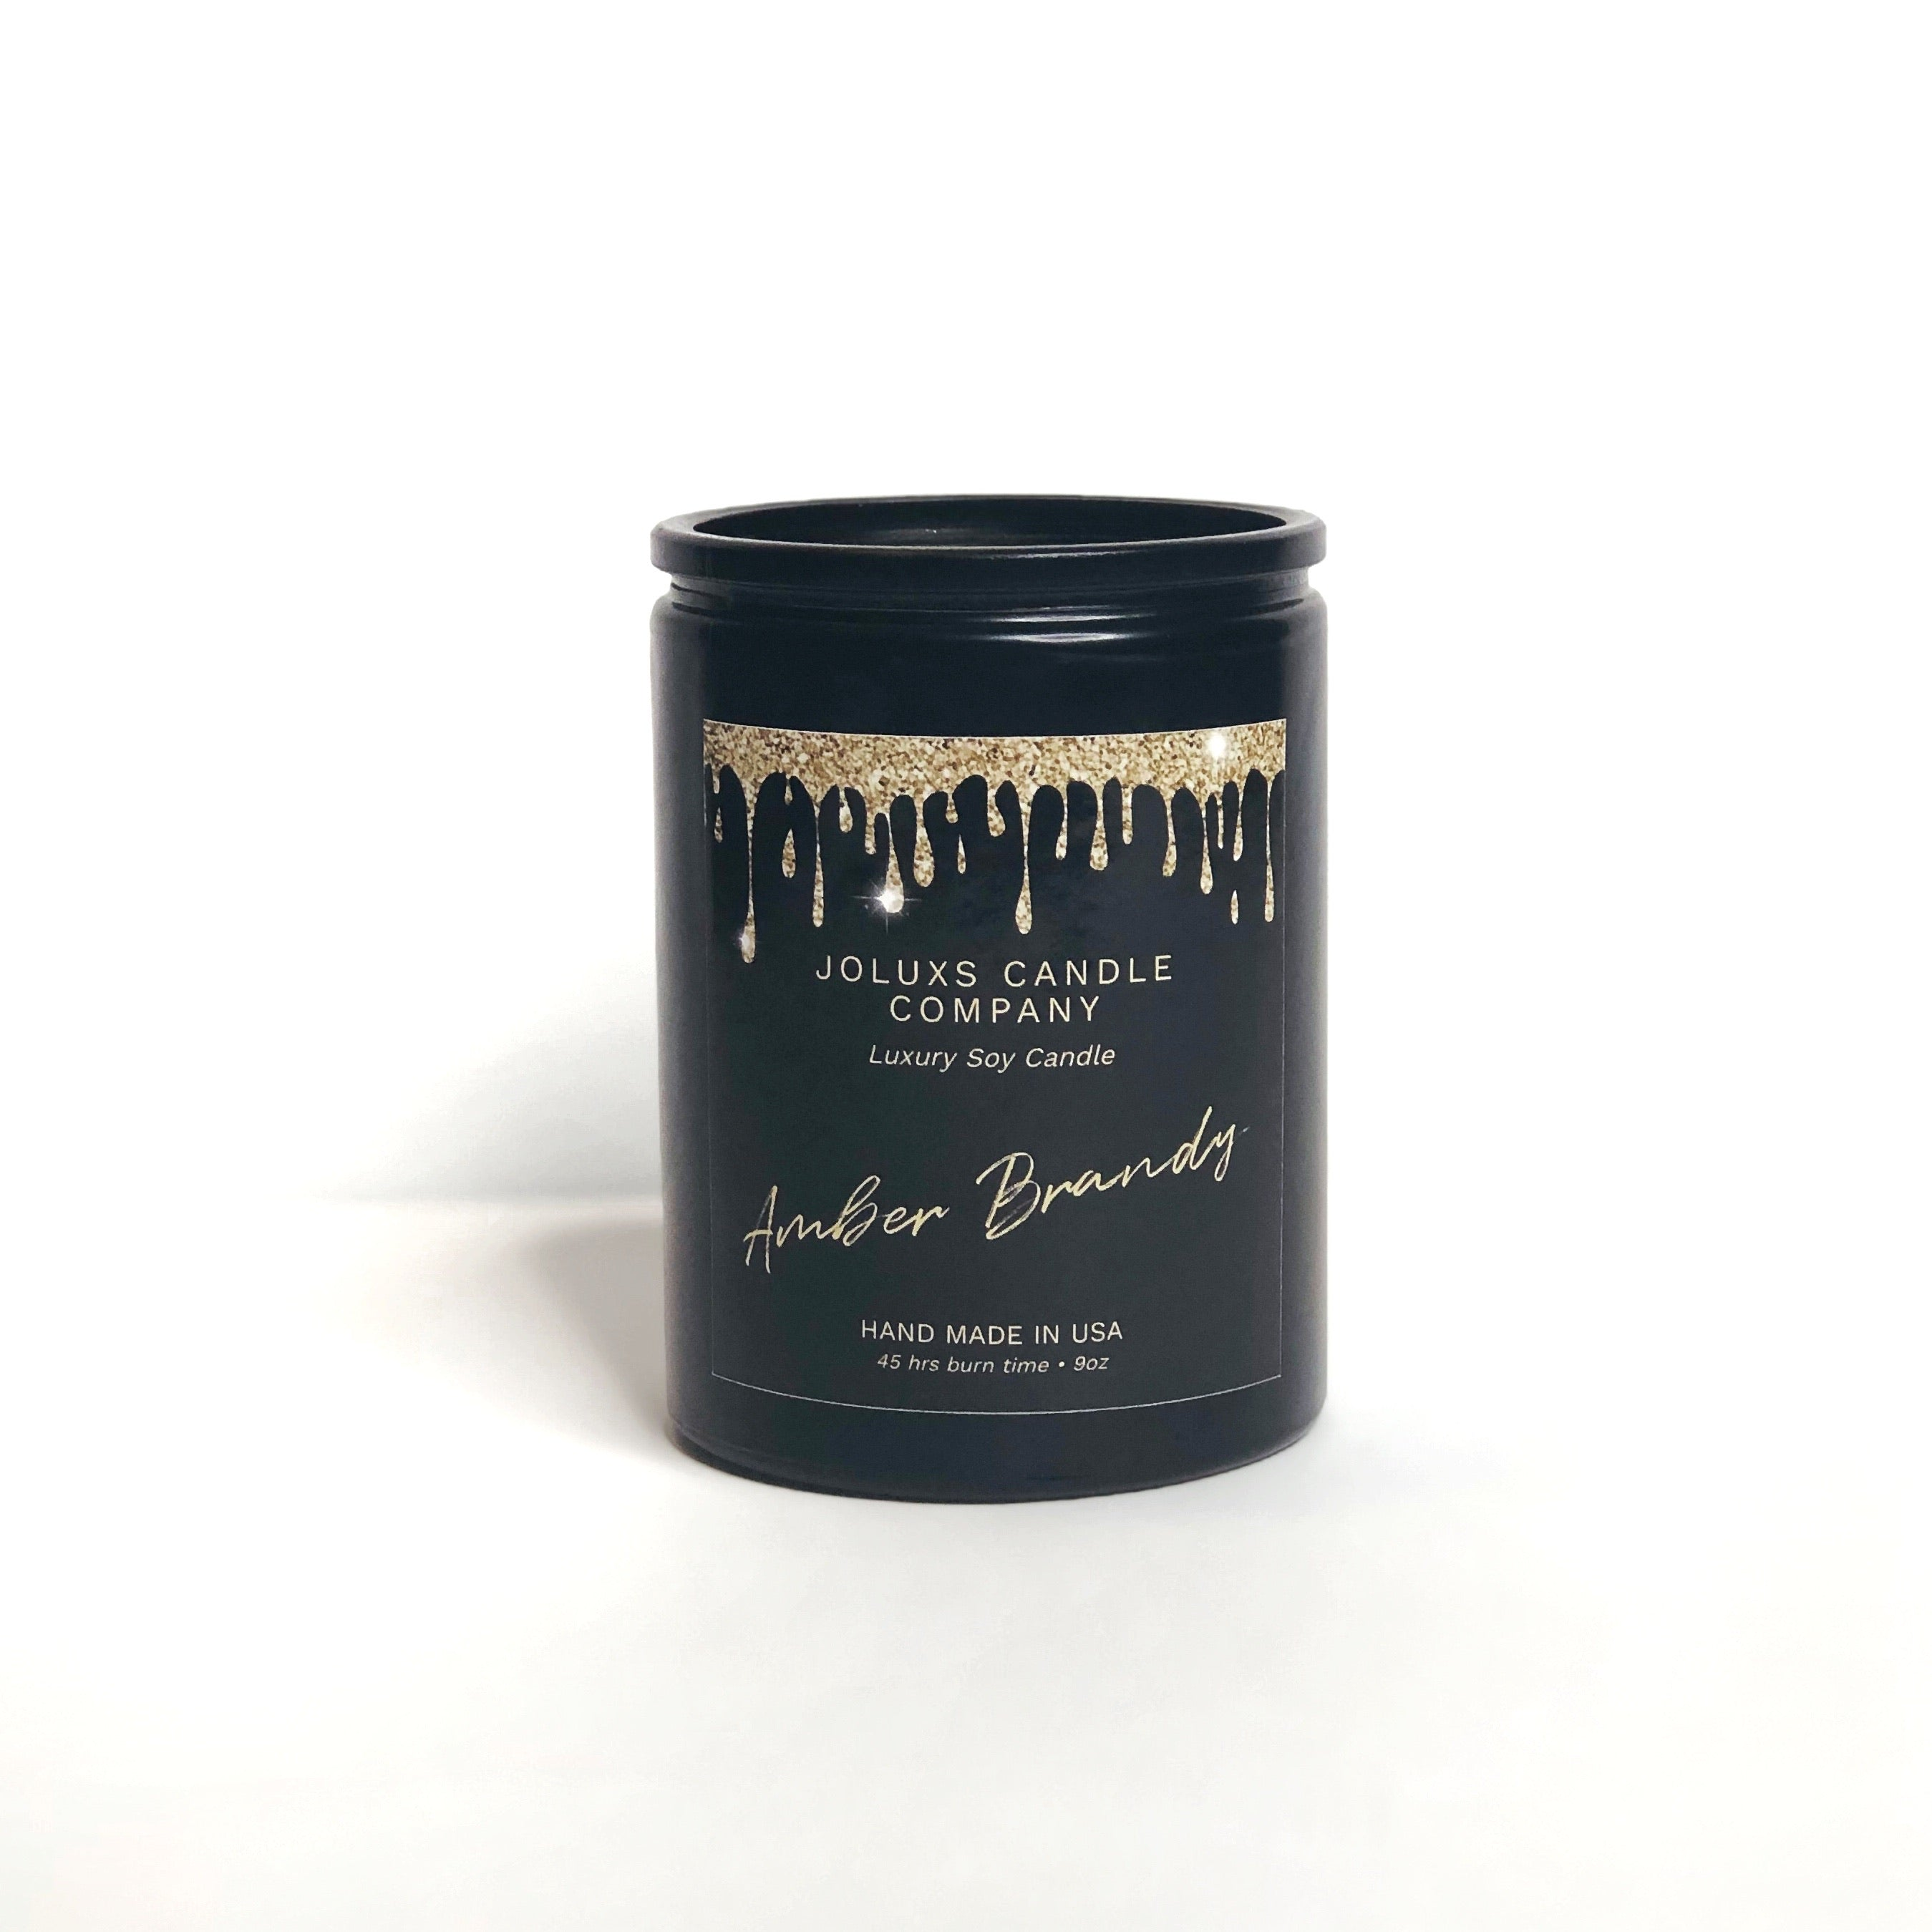 Amber Brandy Soy Candle